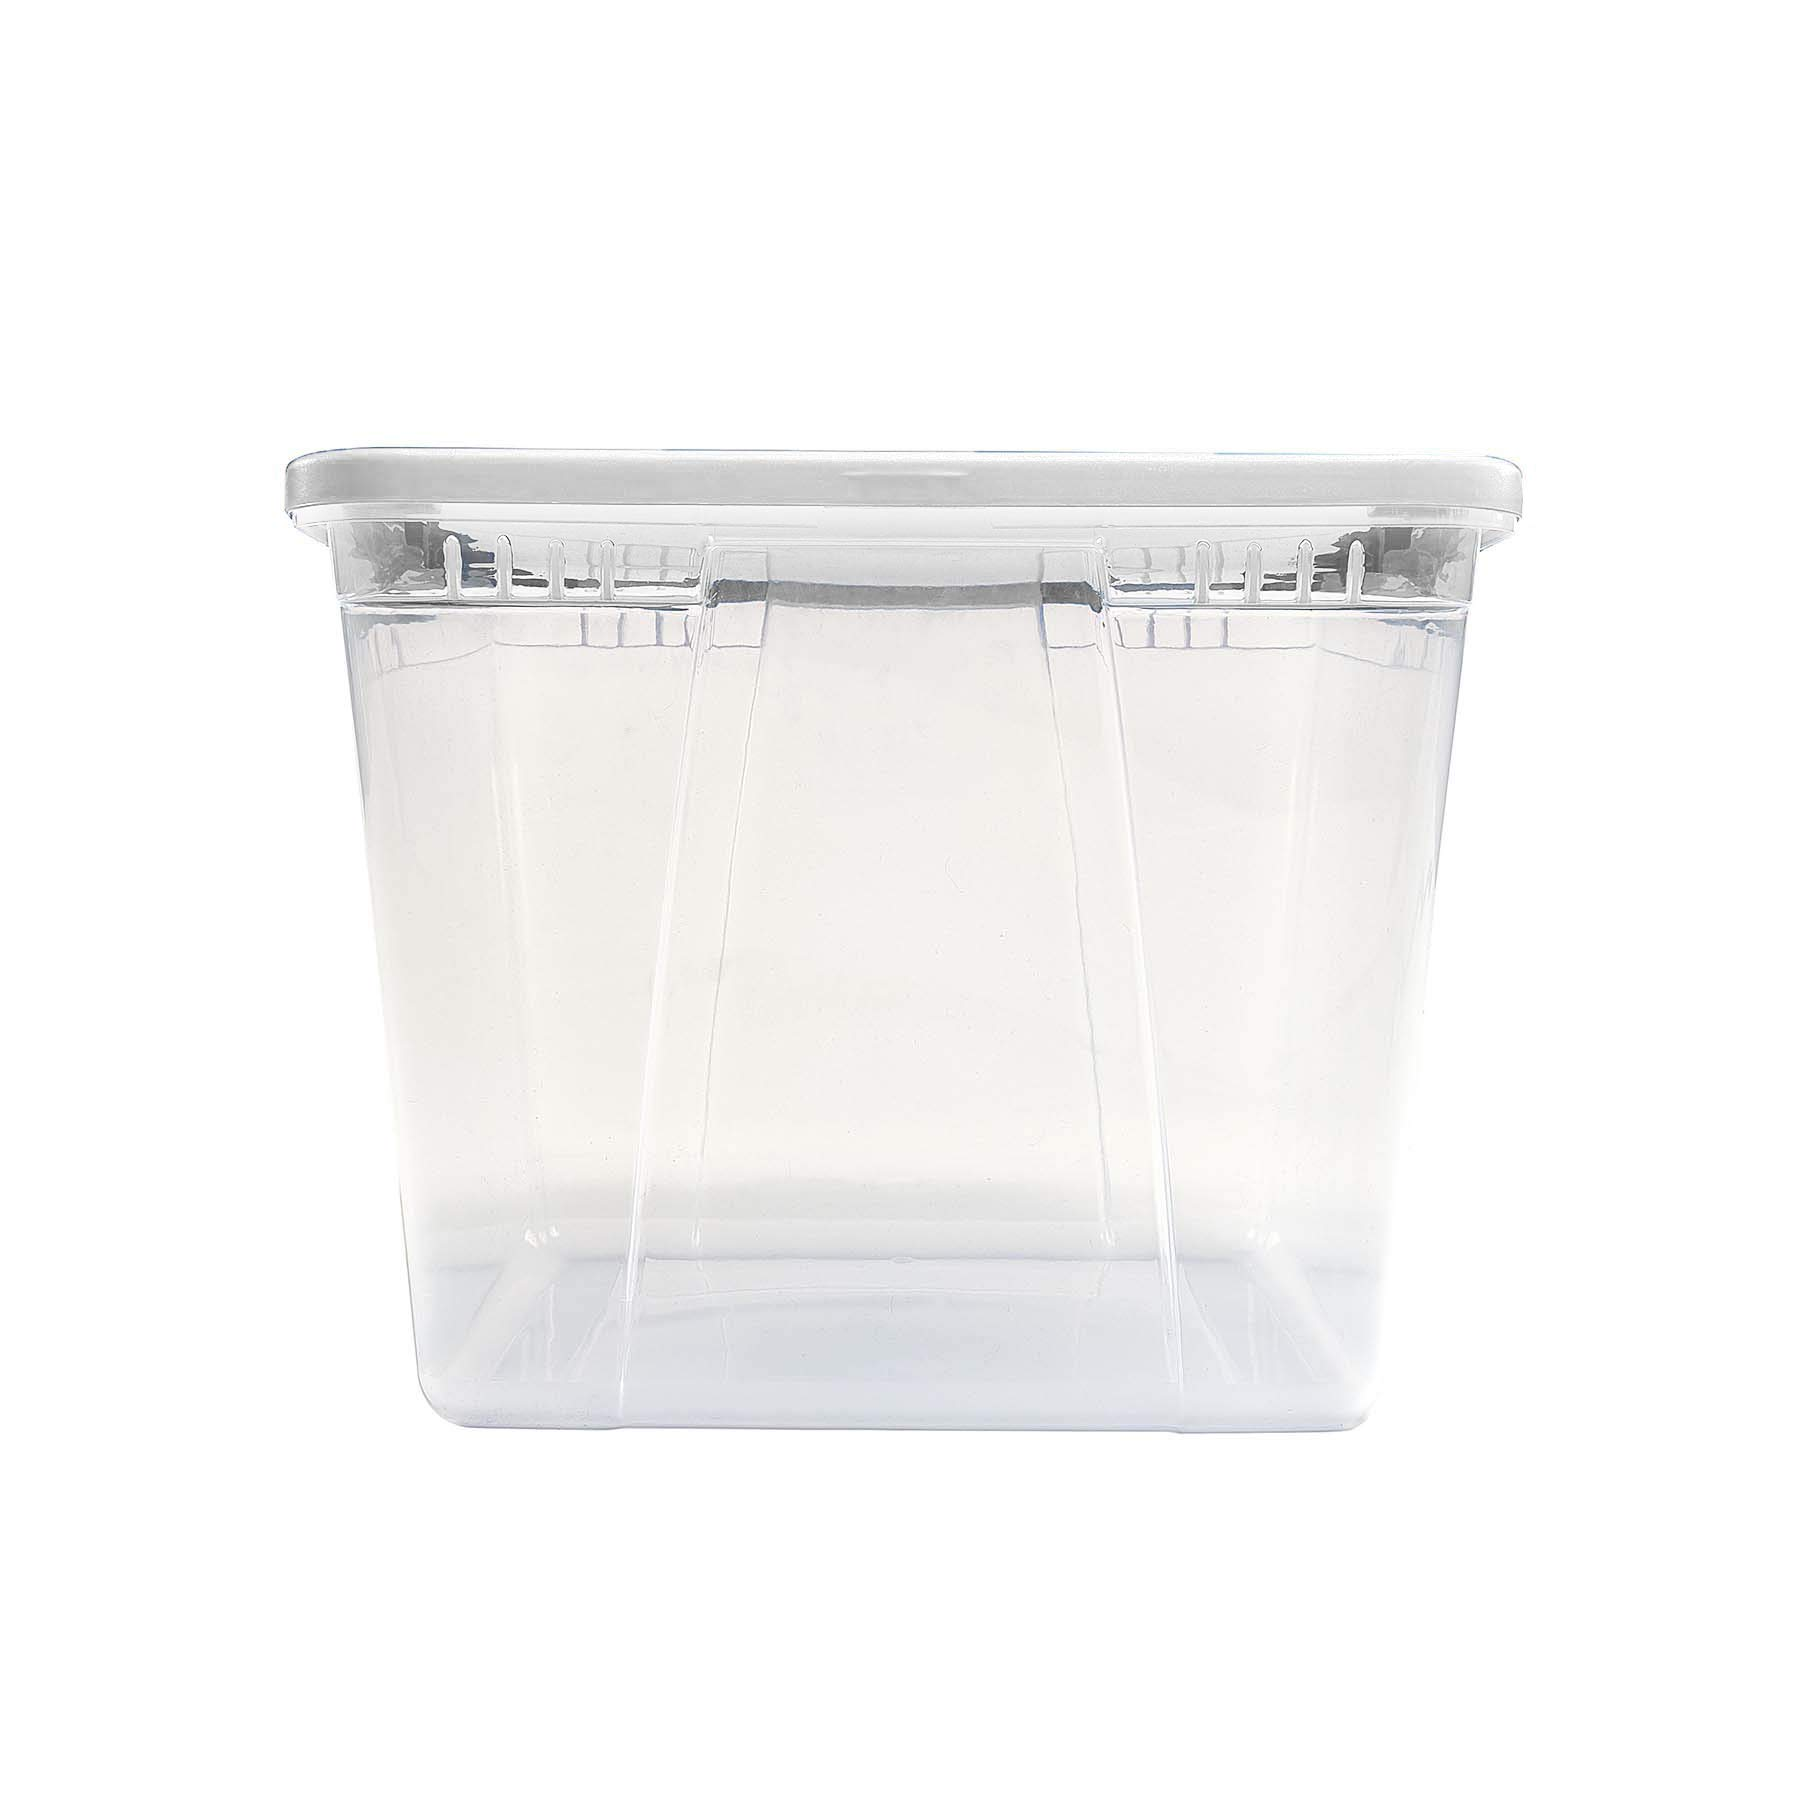 Homz 56 Quart Snaplock Container Clear Storage Bin with Lid, 4 Pack, White, 4 Sets by Homz (Image #5)